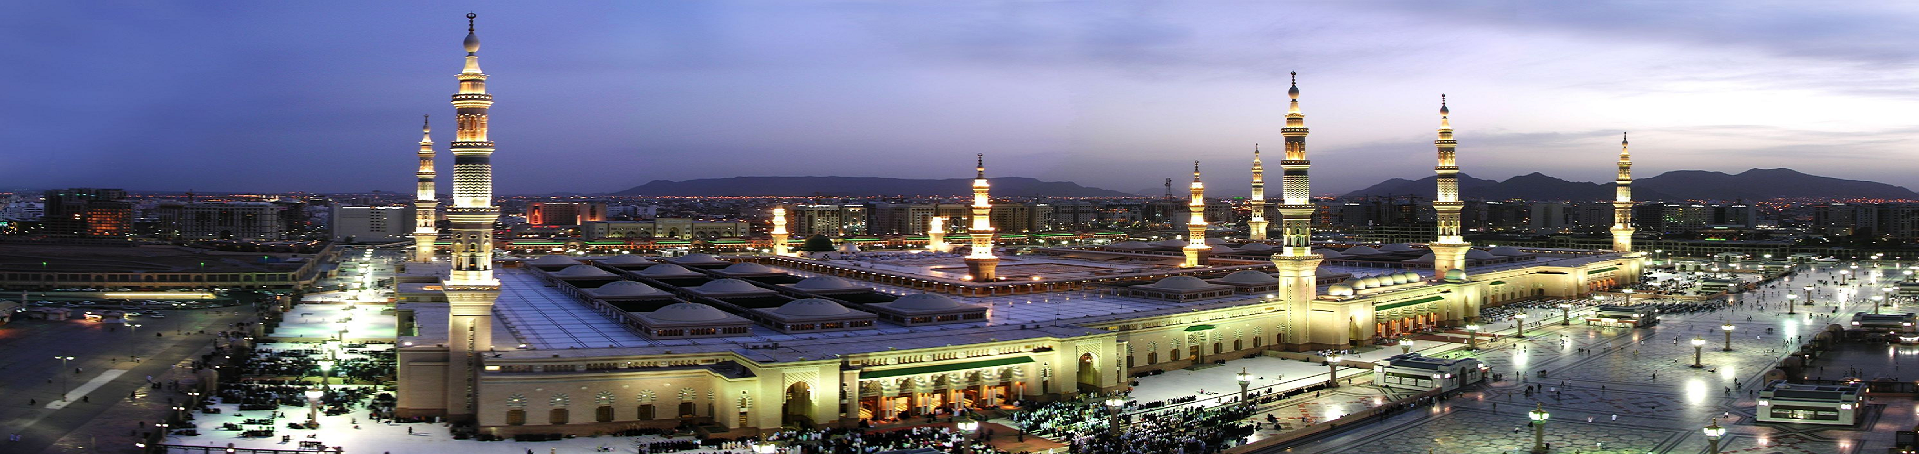 /BannerImages/Masjid Nabawi Banner.png